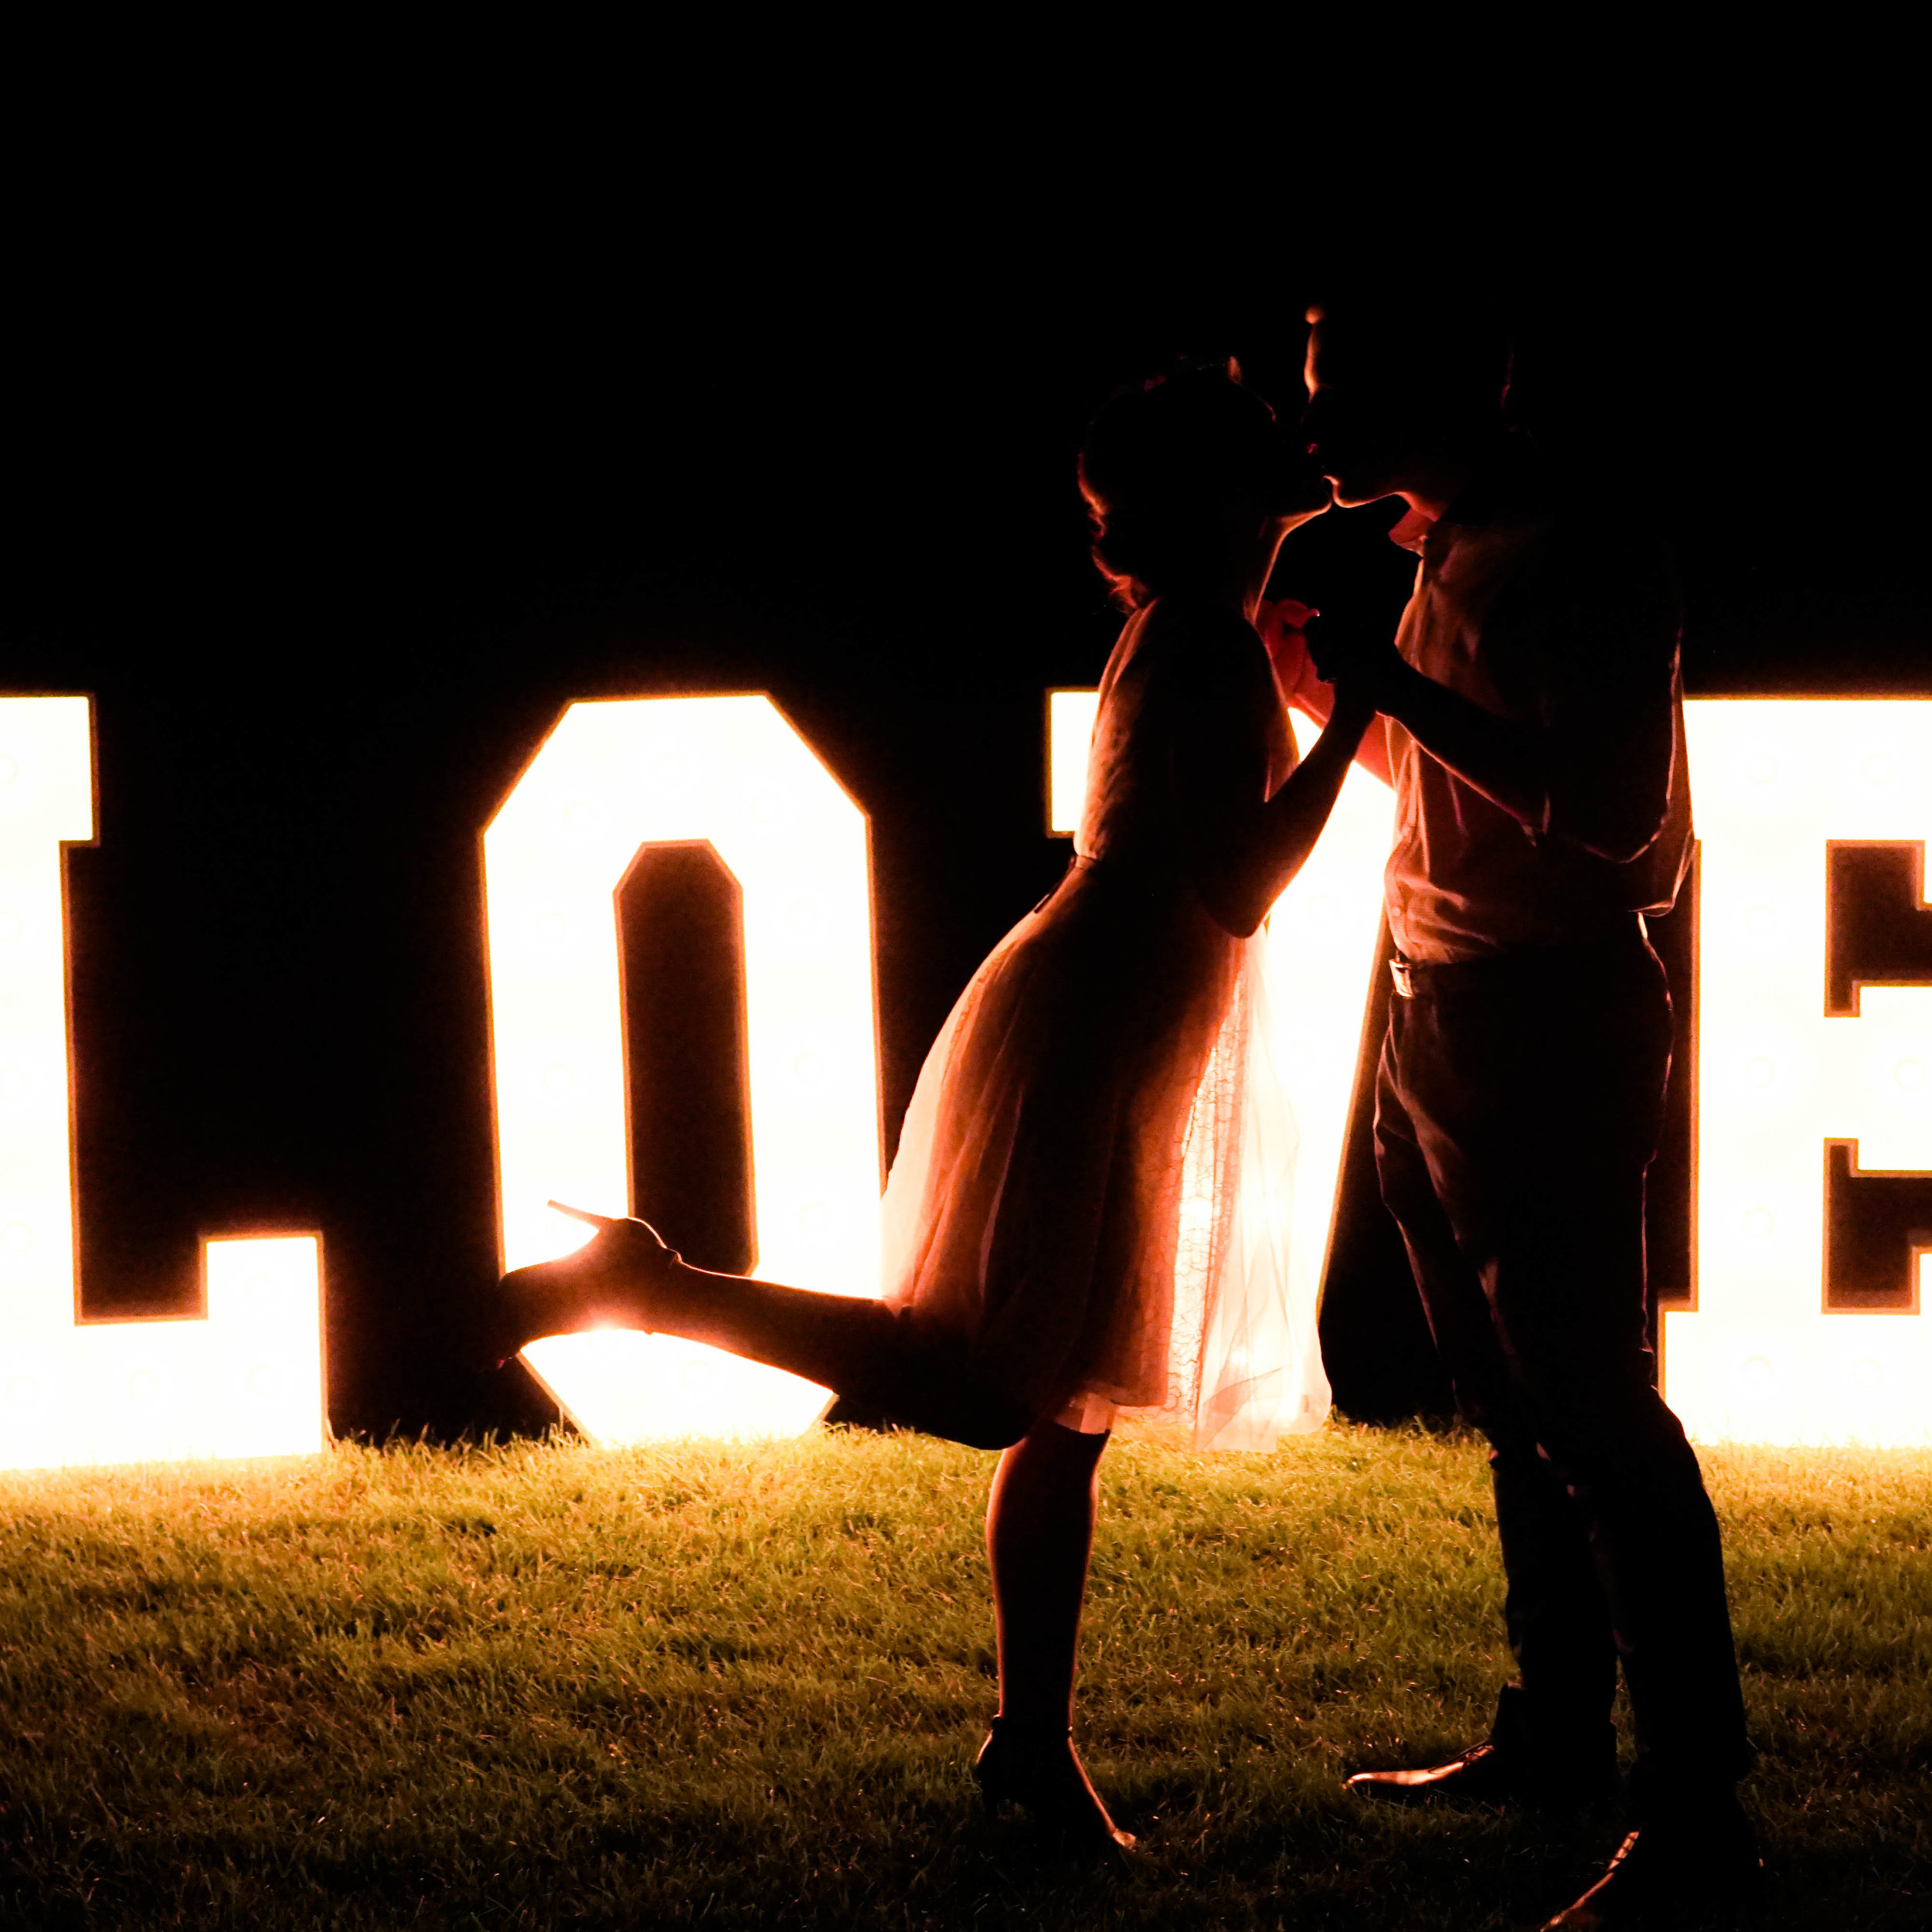 awsome couple with the love sign